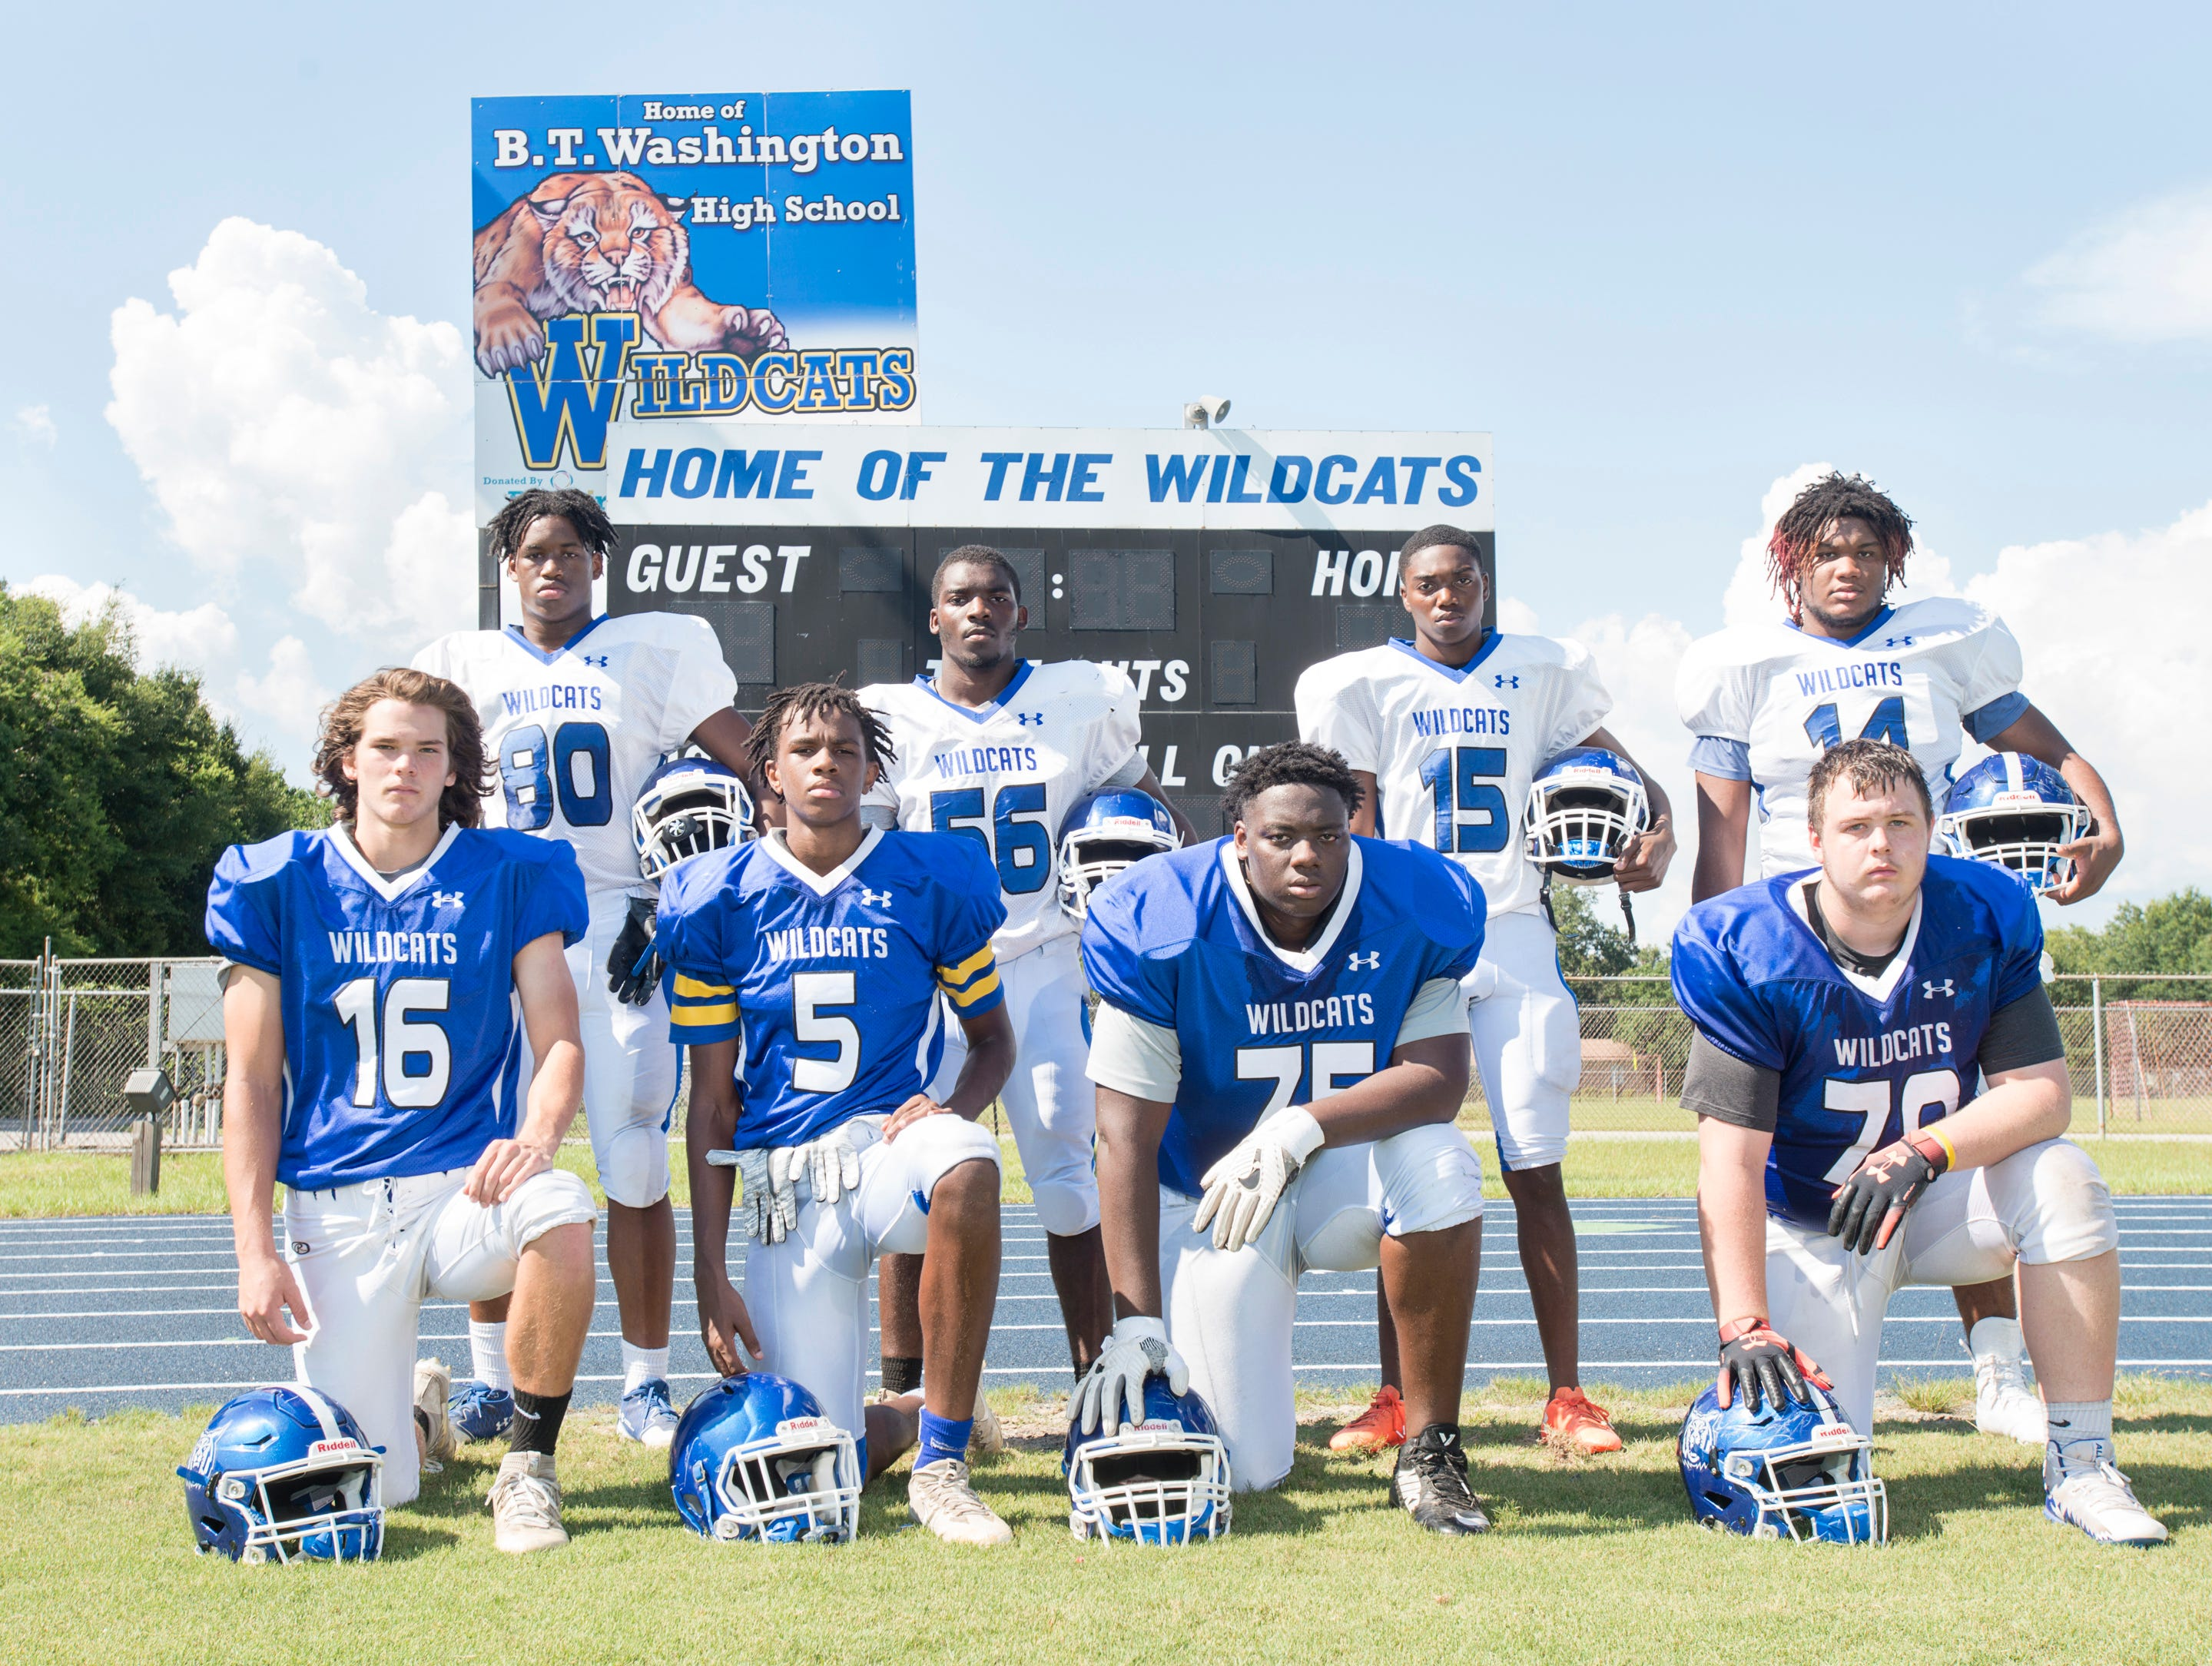 Front row from left: Joe Slattery (16), Erick Smith (5), Timothy Robinson  (75), Michael Hynes (70) and back row from left: Eric Thomas (80), Shawn Roberts (56), Darion Mcshan (15), Amari Severson (14) pose for a photo during football practice at Booker T. Washington High School in Pensacola on Monday, August 6, 2018.